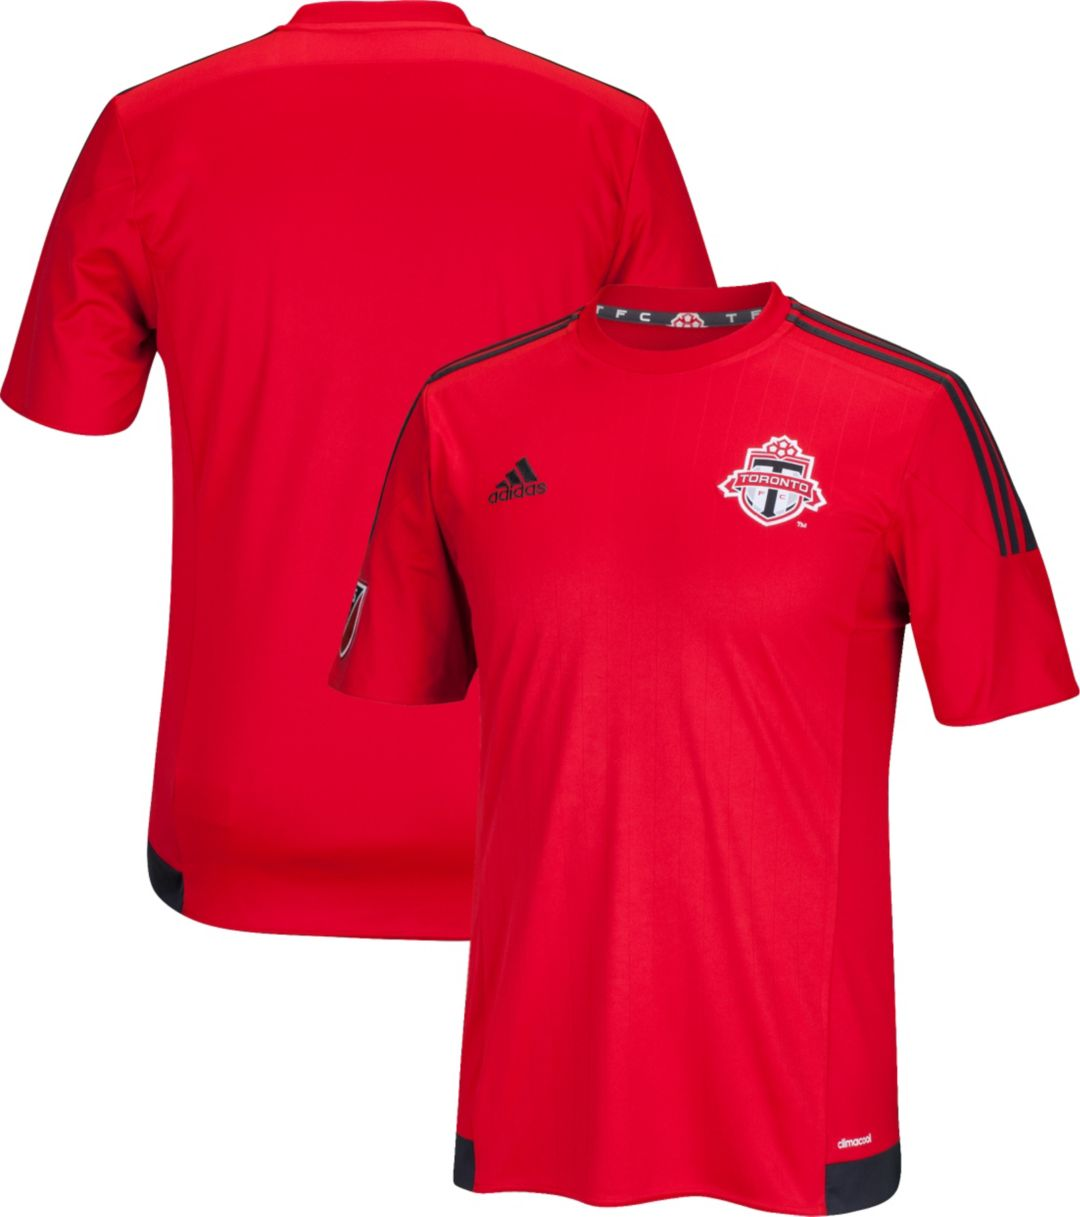 super popular 98d9c a9788 adidas Men's 2015 Toronto FC Primary Replica Jersey